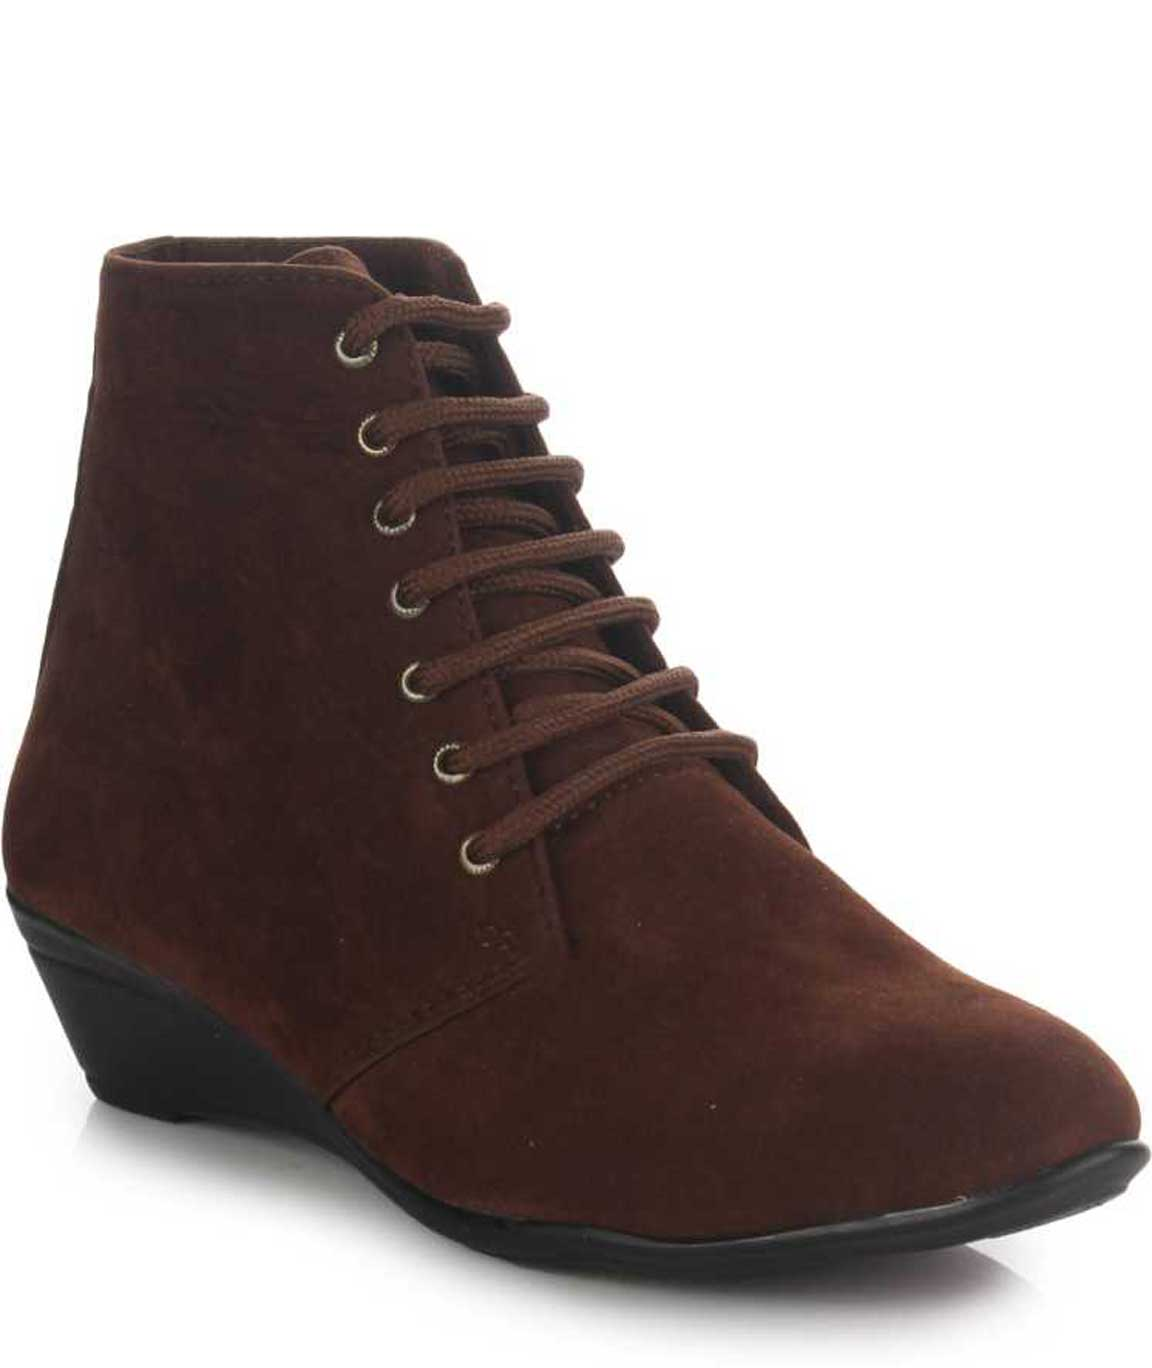 BOOTS FOR WOMEN ( BROWN )